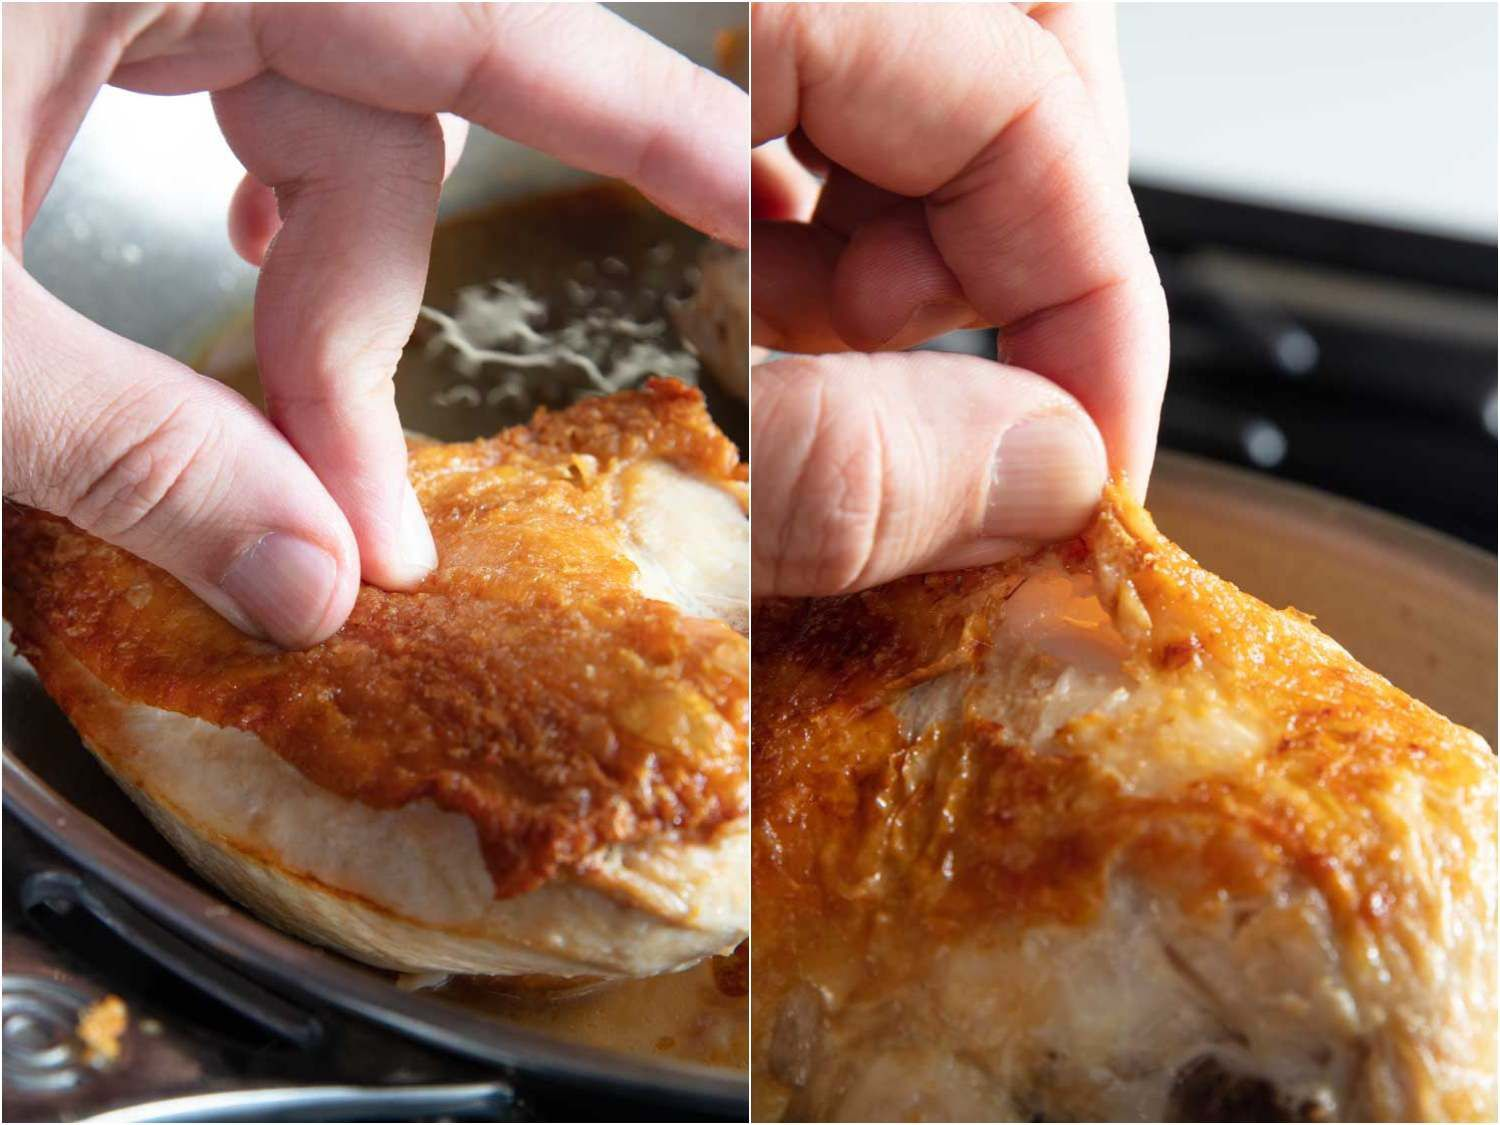 A side-by-side image showing how crisp the skin is on chicken cooked in a stainless steel skillet versus a nonstick one. The skin on from the nonstick skillet bird is easier to pinch because it's less crispy in many areas.